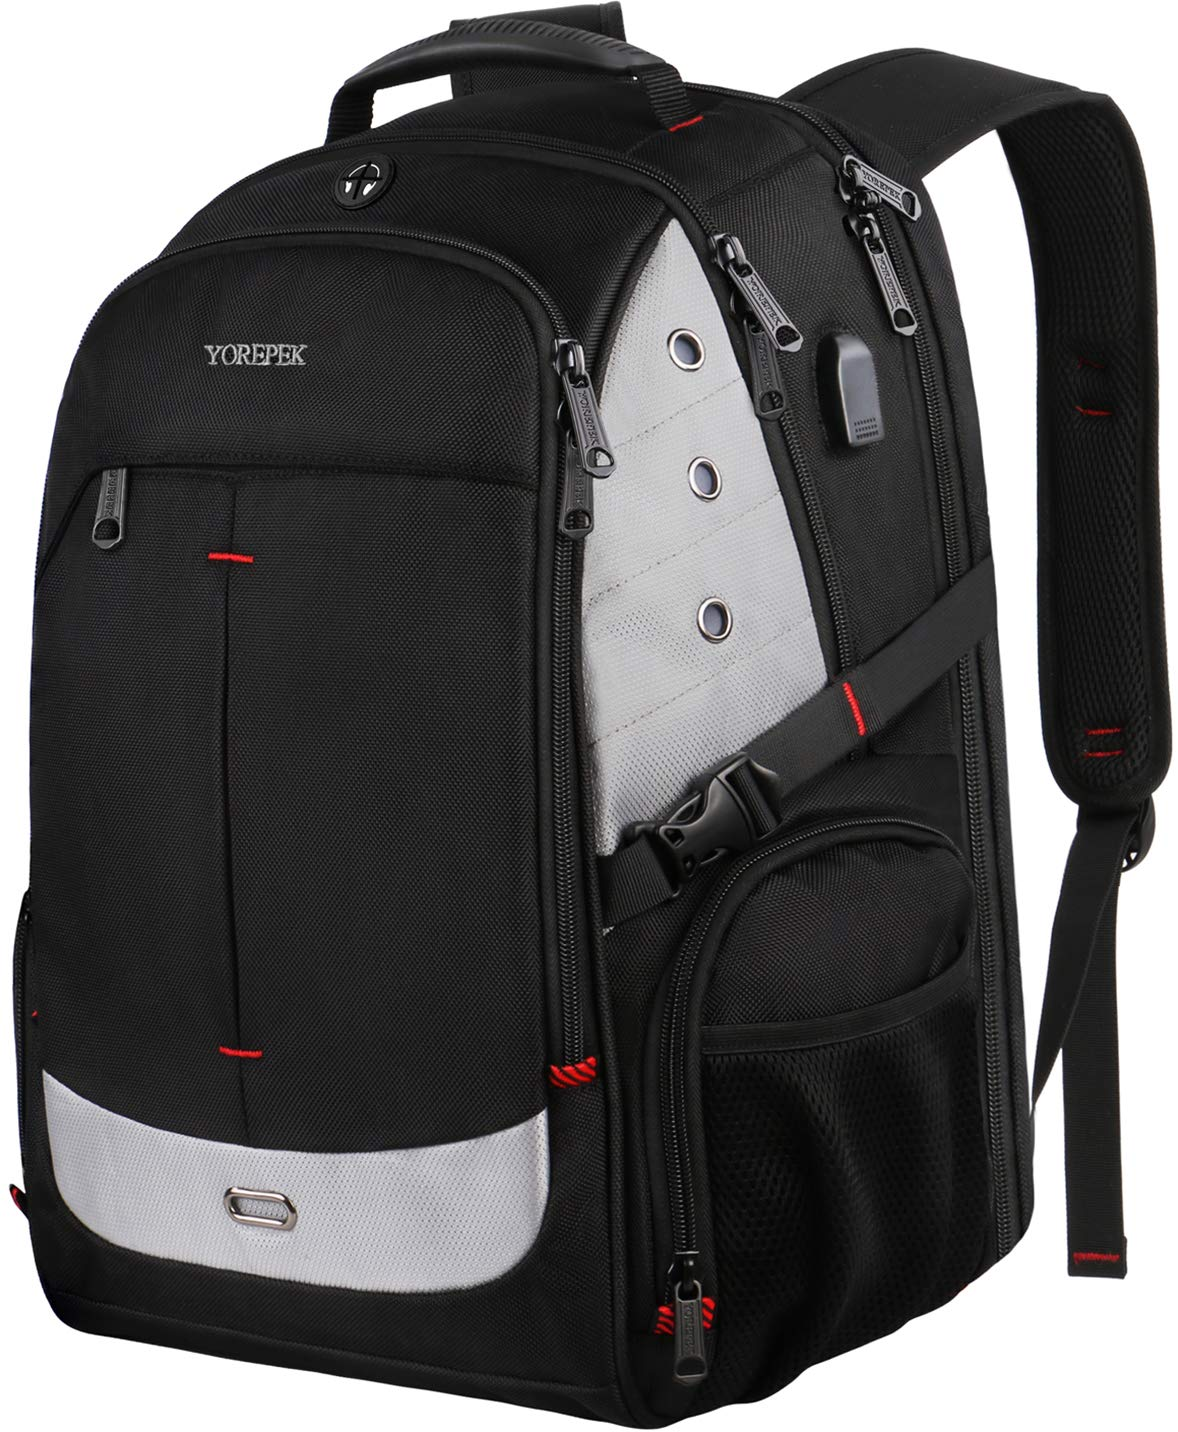 Large Laptop Backpack, 17 Inch Laptop Backpack with USB Charging Port for Men and Women,TSA Laptop Backpacks College School Backpack Business Computer Bookbag Fit 17in Laptops,Black by YOREPEK